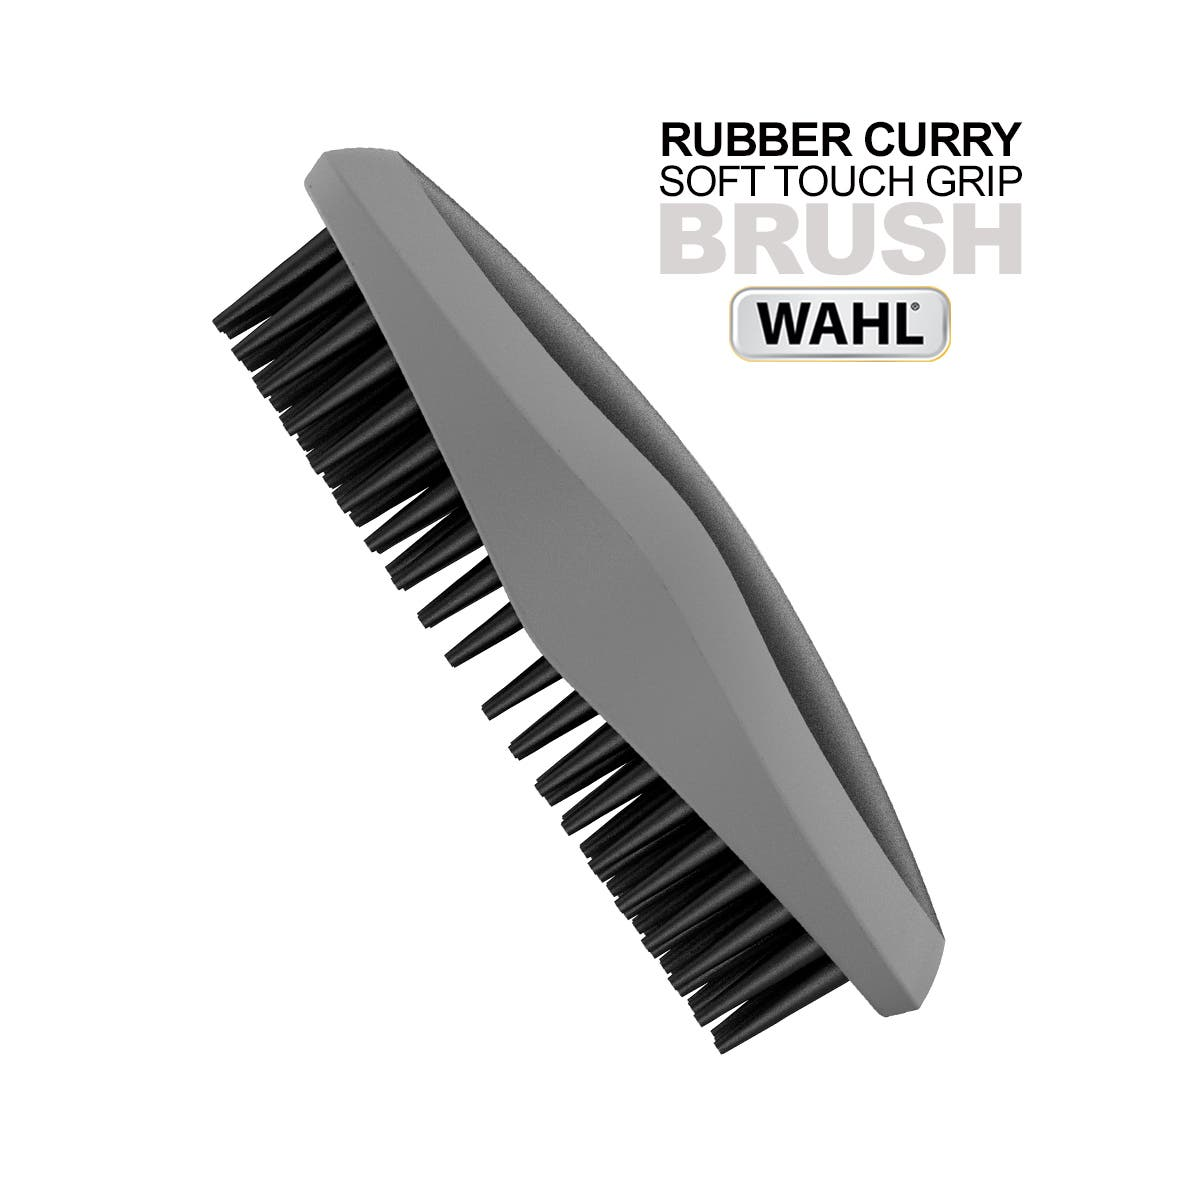 Wahl Rubber Curry Pet/Animal Brushes - Soft Touch Grip